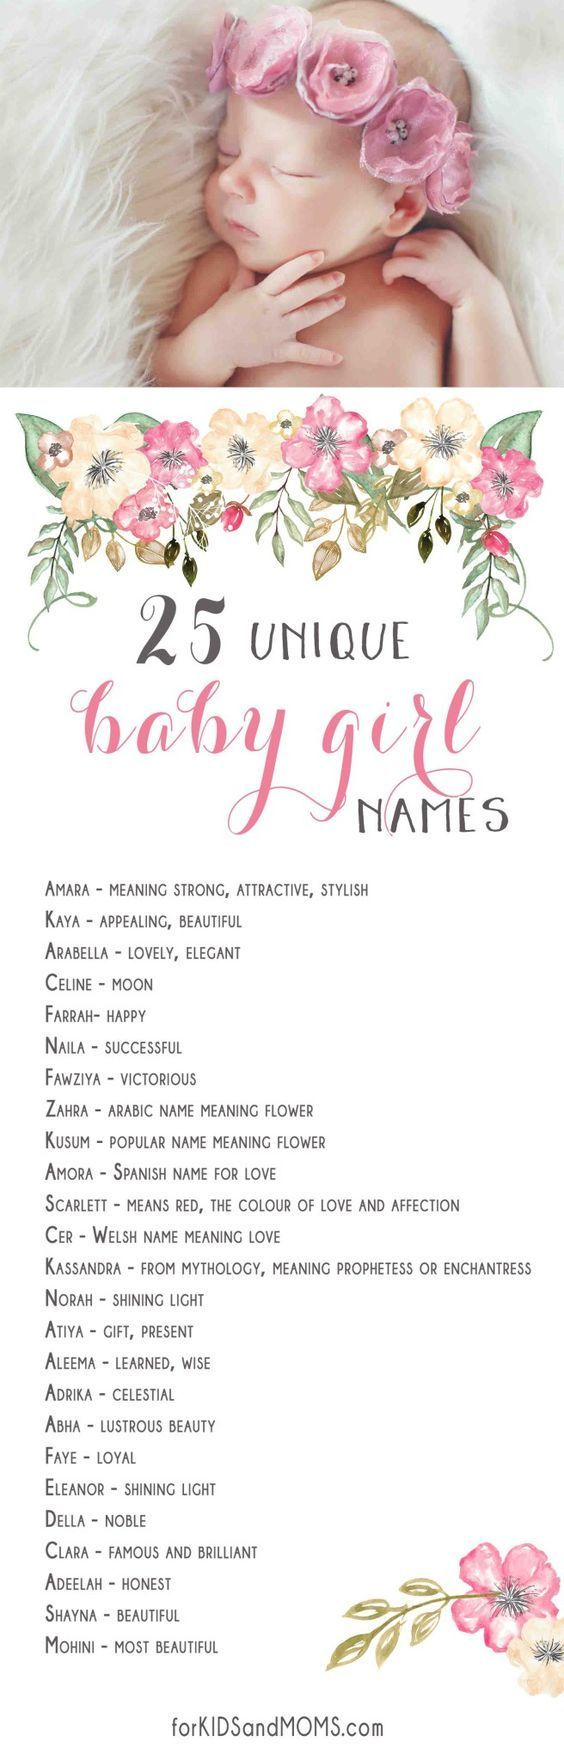 25 Unique Baby Girl Names And Meanings List Forkidsandmoms